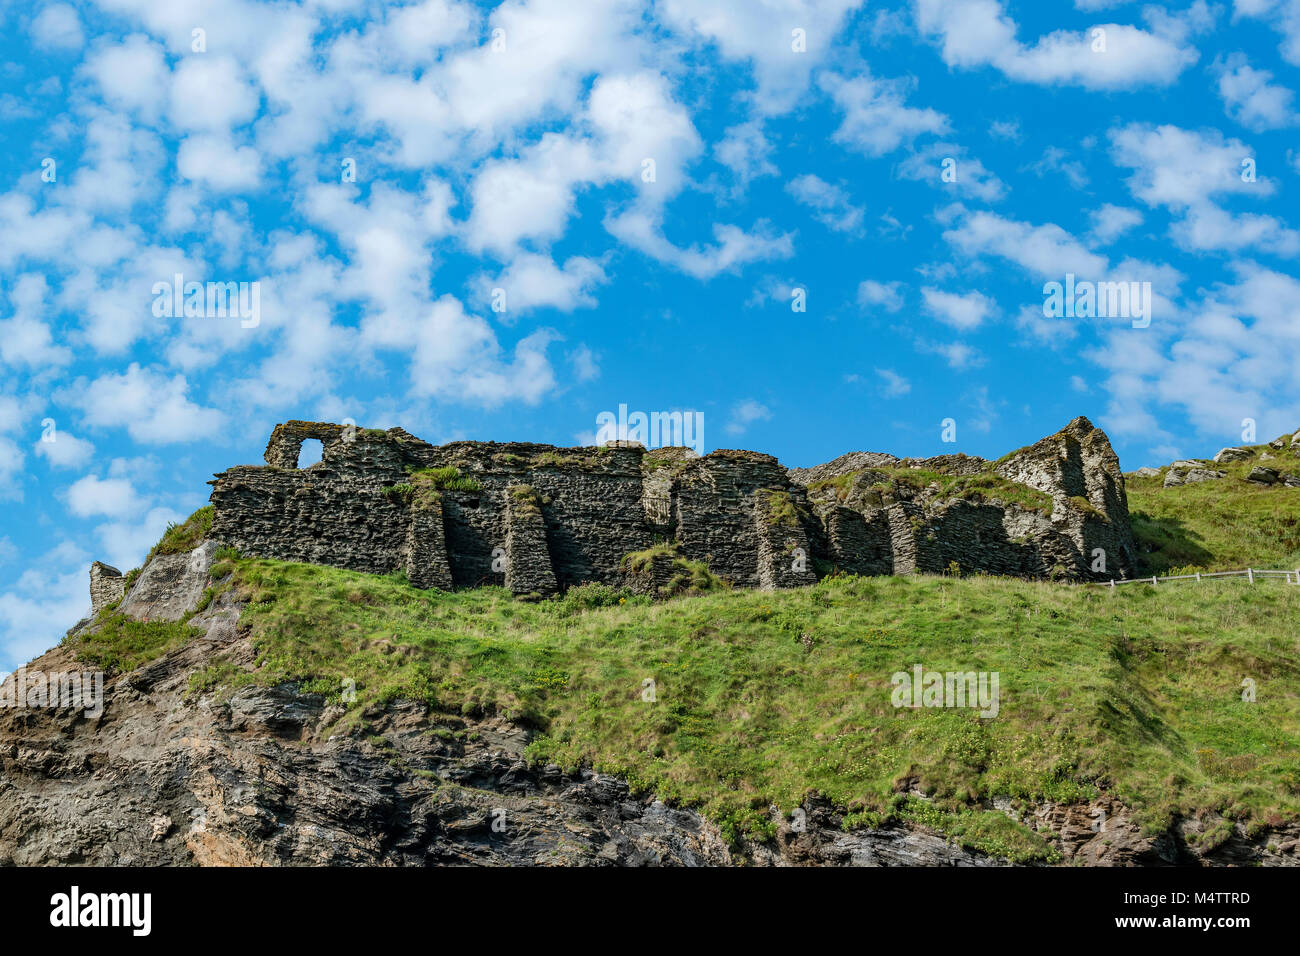 tintagel castle in cornwall, england, britain, uk. - Stock Image